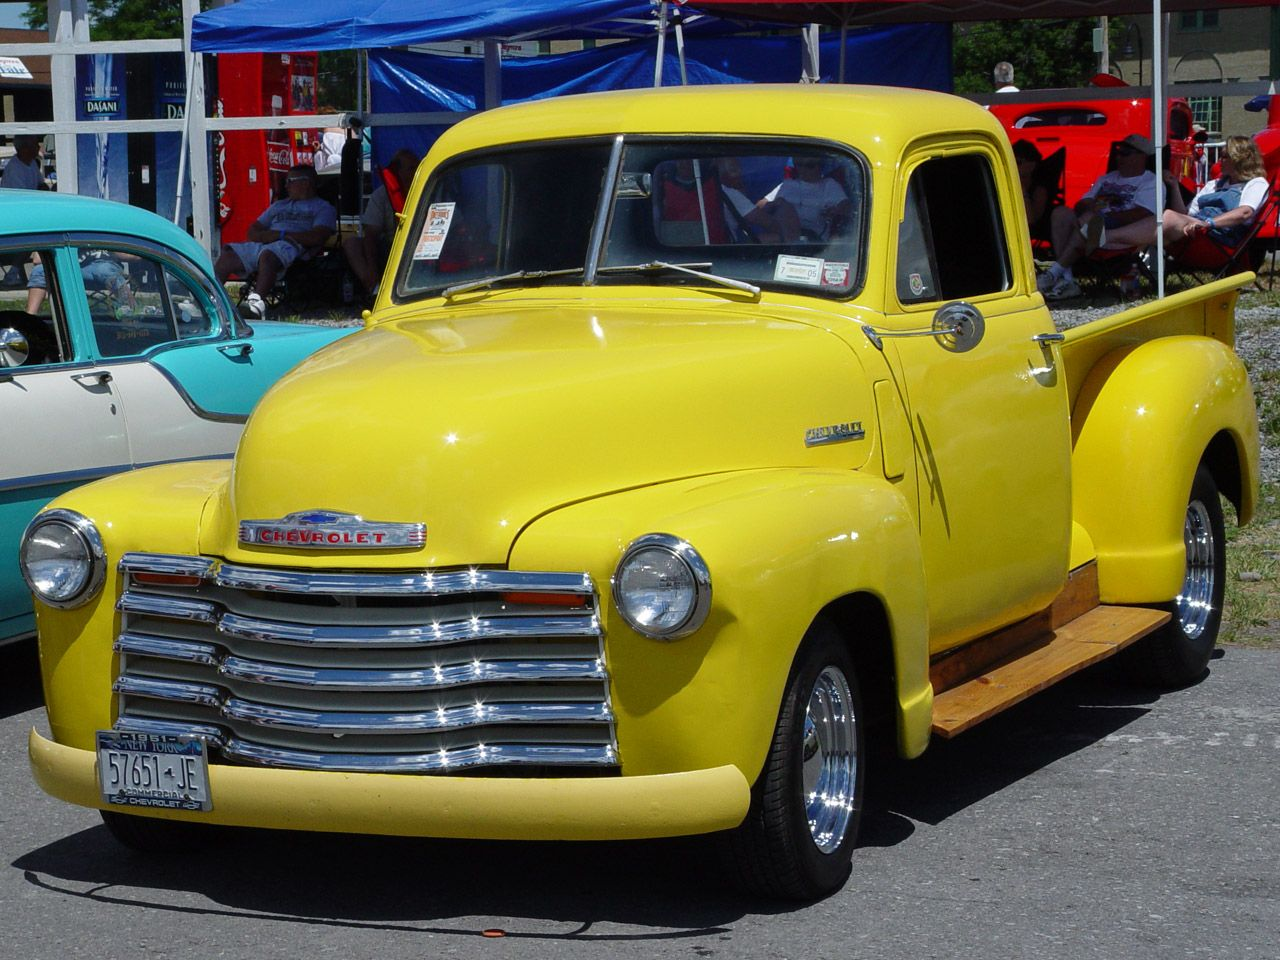 1951 Chevrolet Pickup Yellow Front Angle 1280x960 Wallpaper Chevrolet Pickup Pickup Trucks Gmc Pickup Trucks